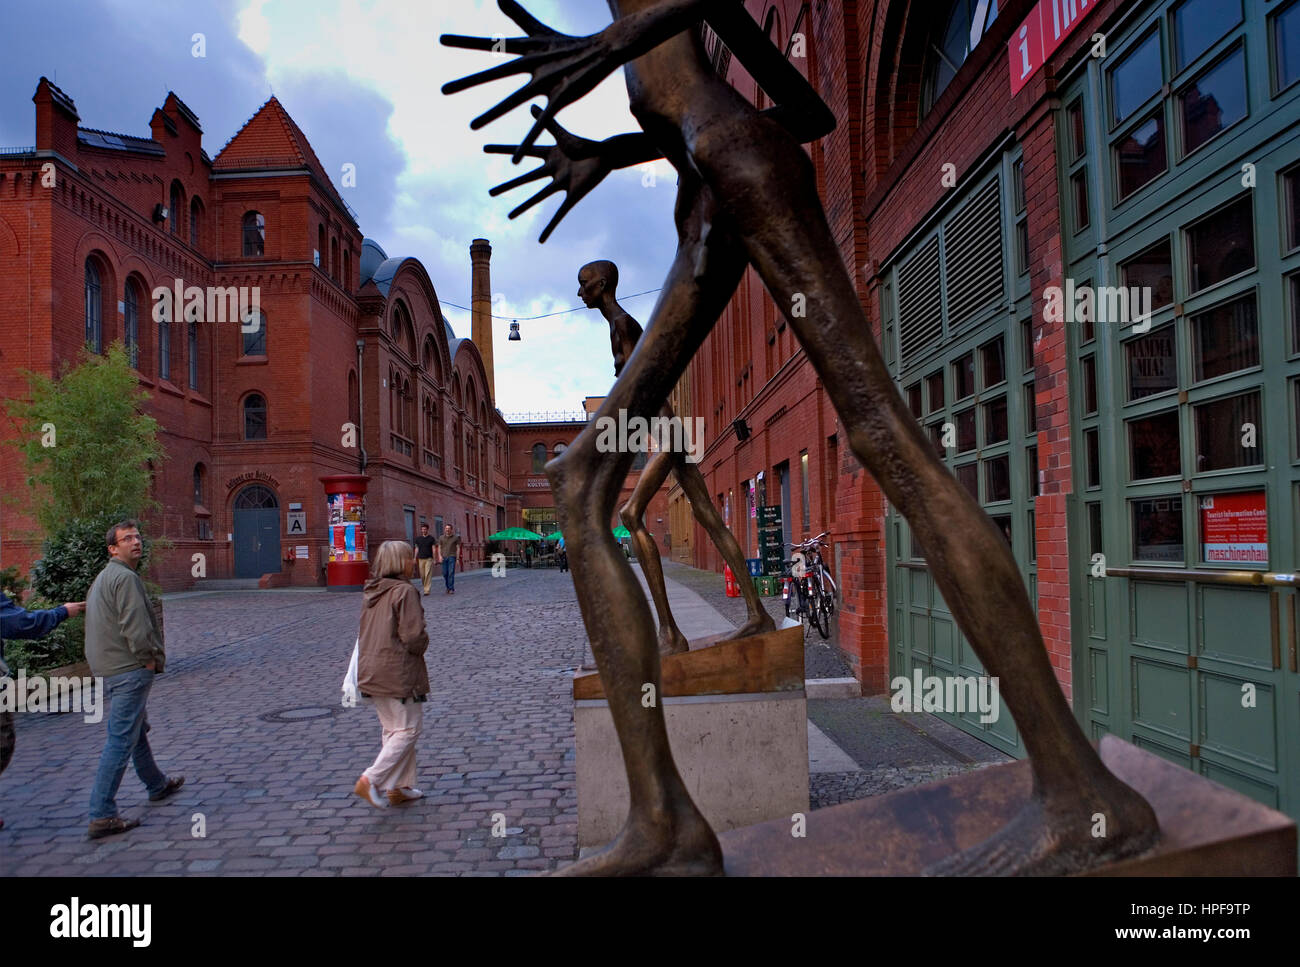 Kultur-brauerei. Sredkinstrave at Schönhauser Allee. Sculptures of Rolf Biebl.Berlin. Germany - Stock Image